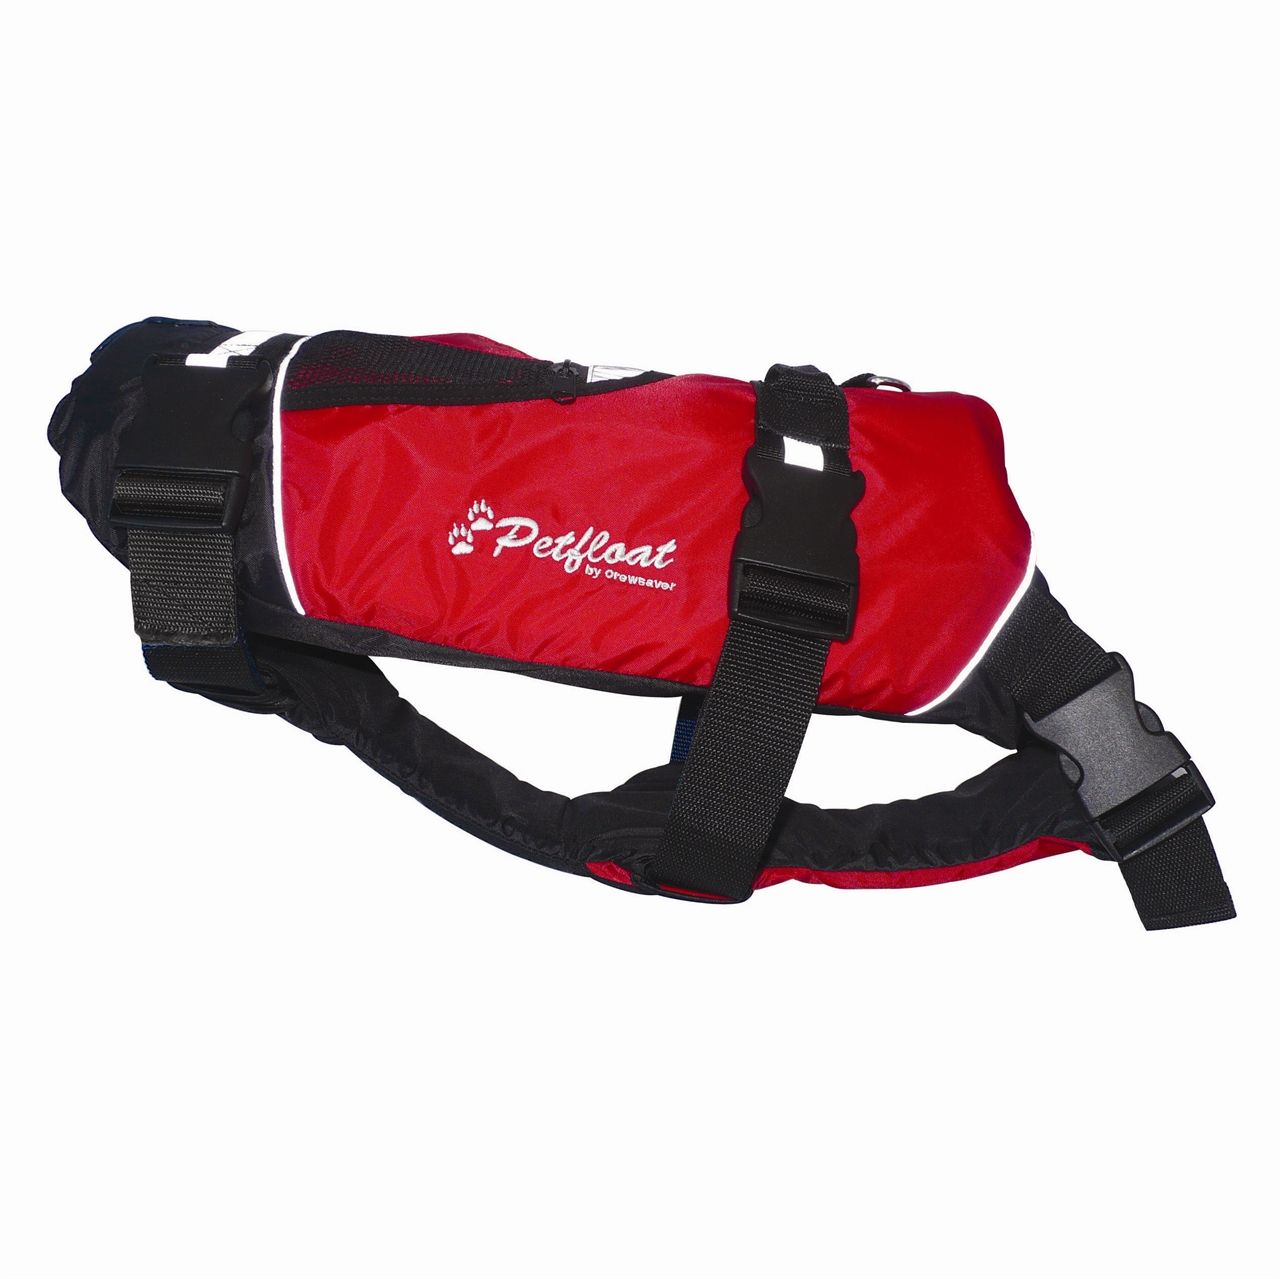 Crewsaver PetFloat Dog/Cat Life Jacket